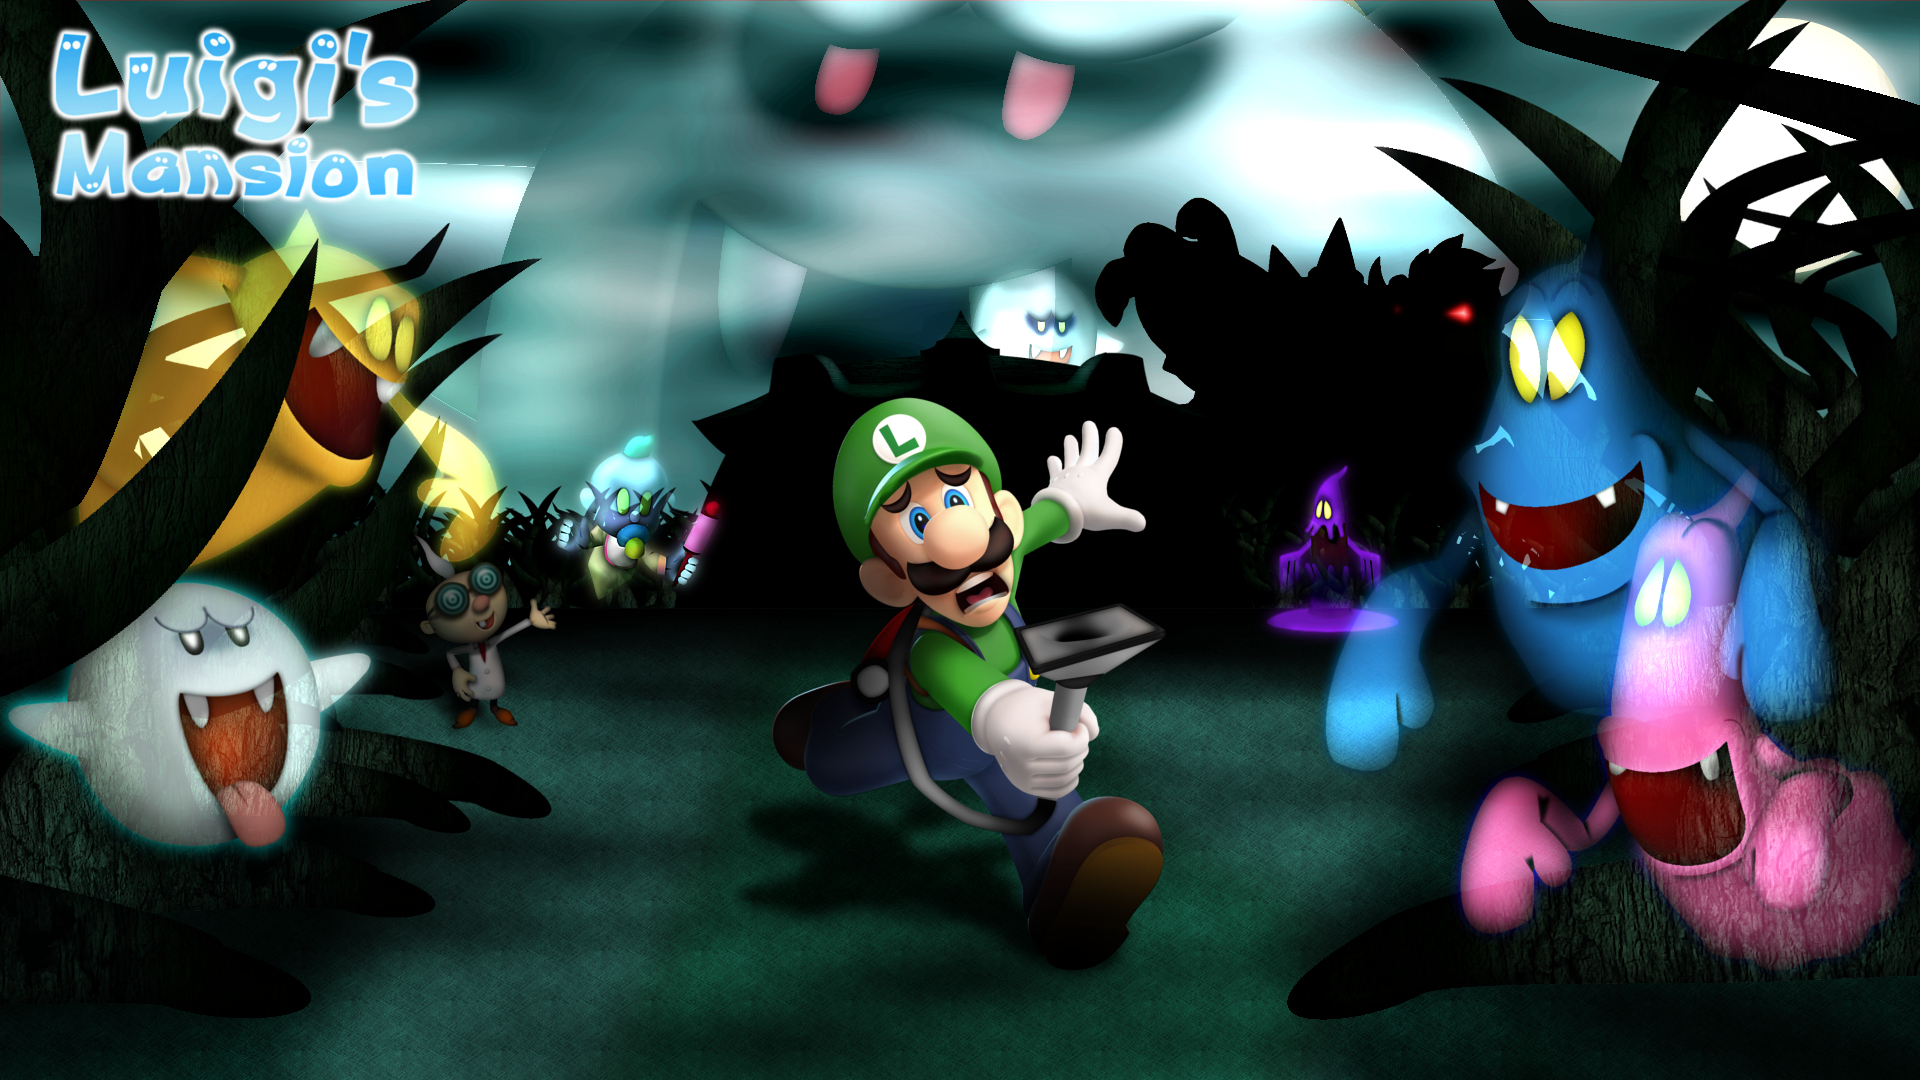 Luigis Mansion Full HD Wallpaper And Background Image